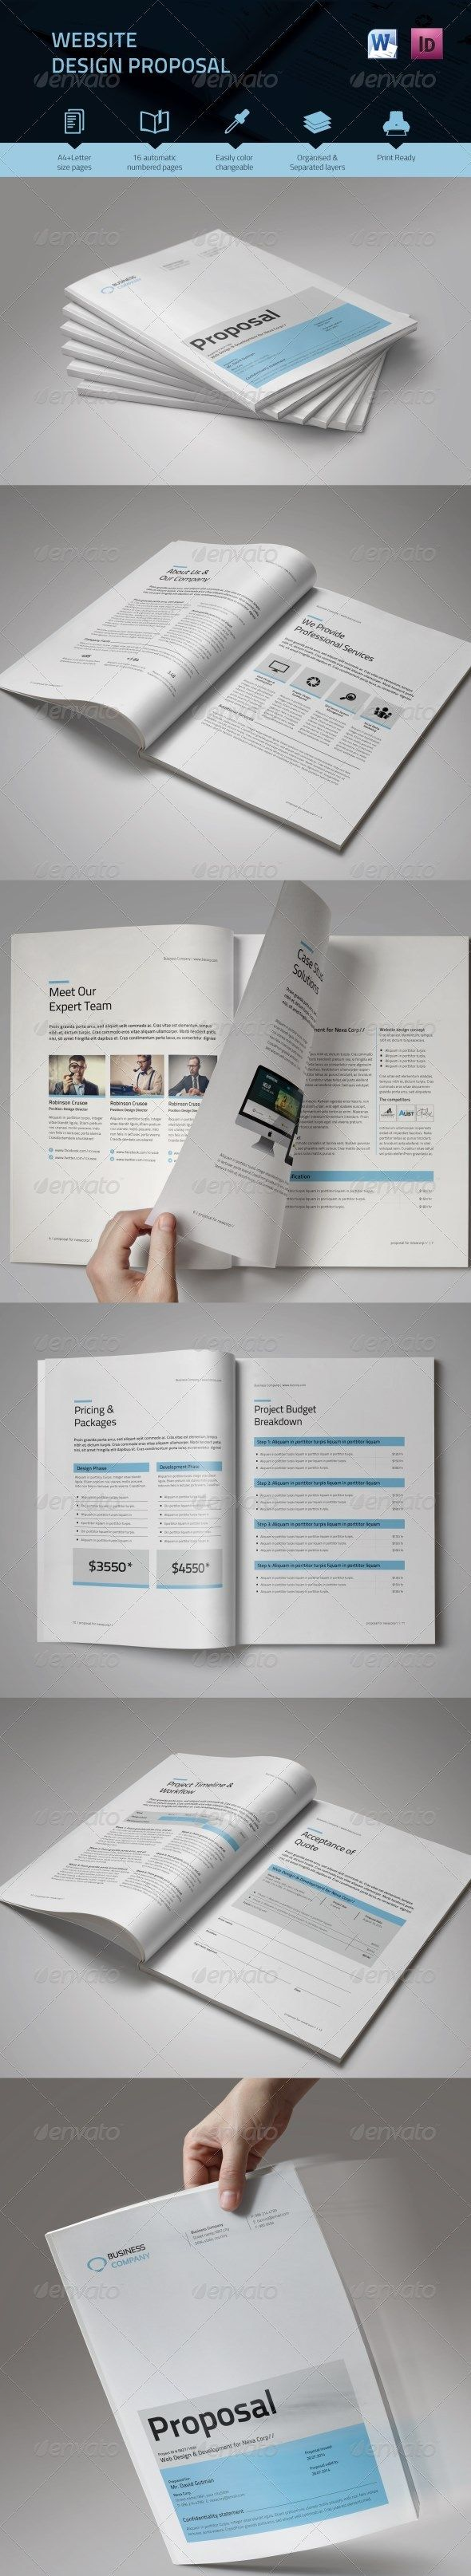 Web Design Proposal  Proposal Templates Proposals And Brochure